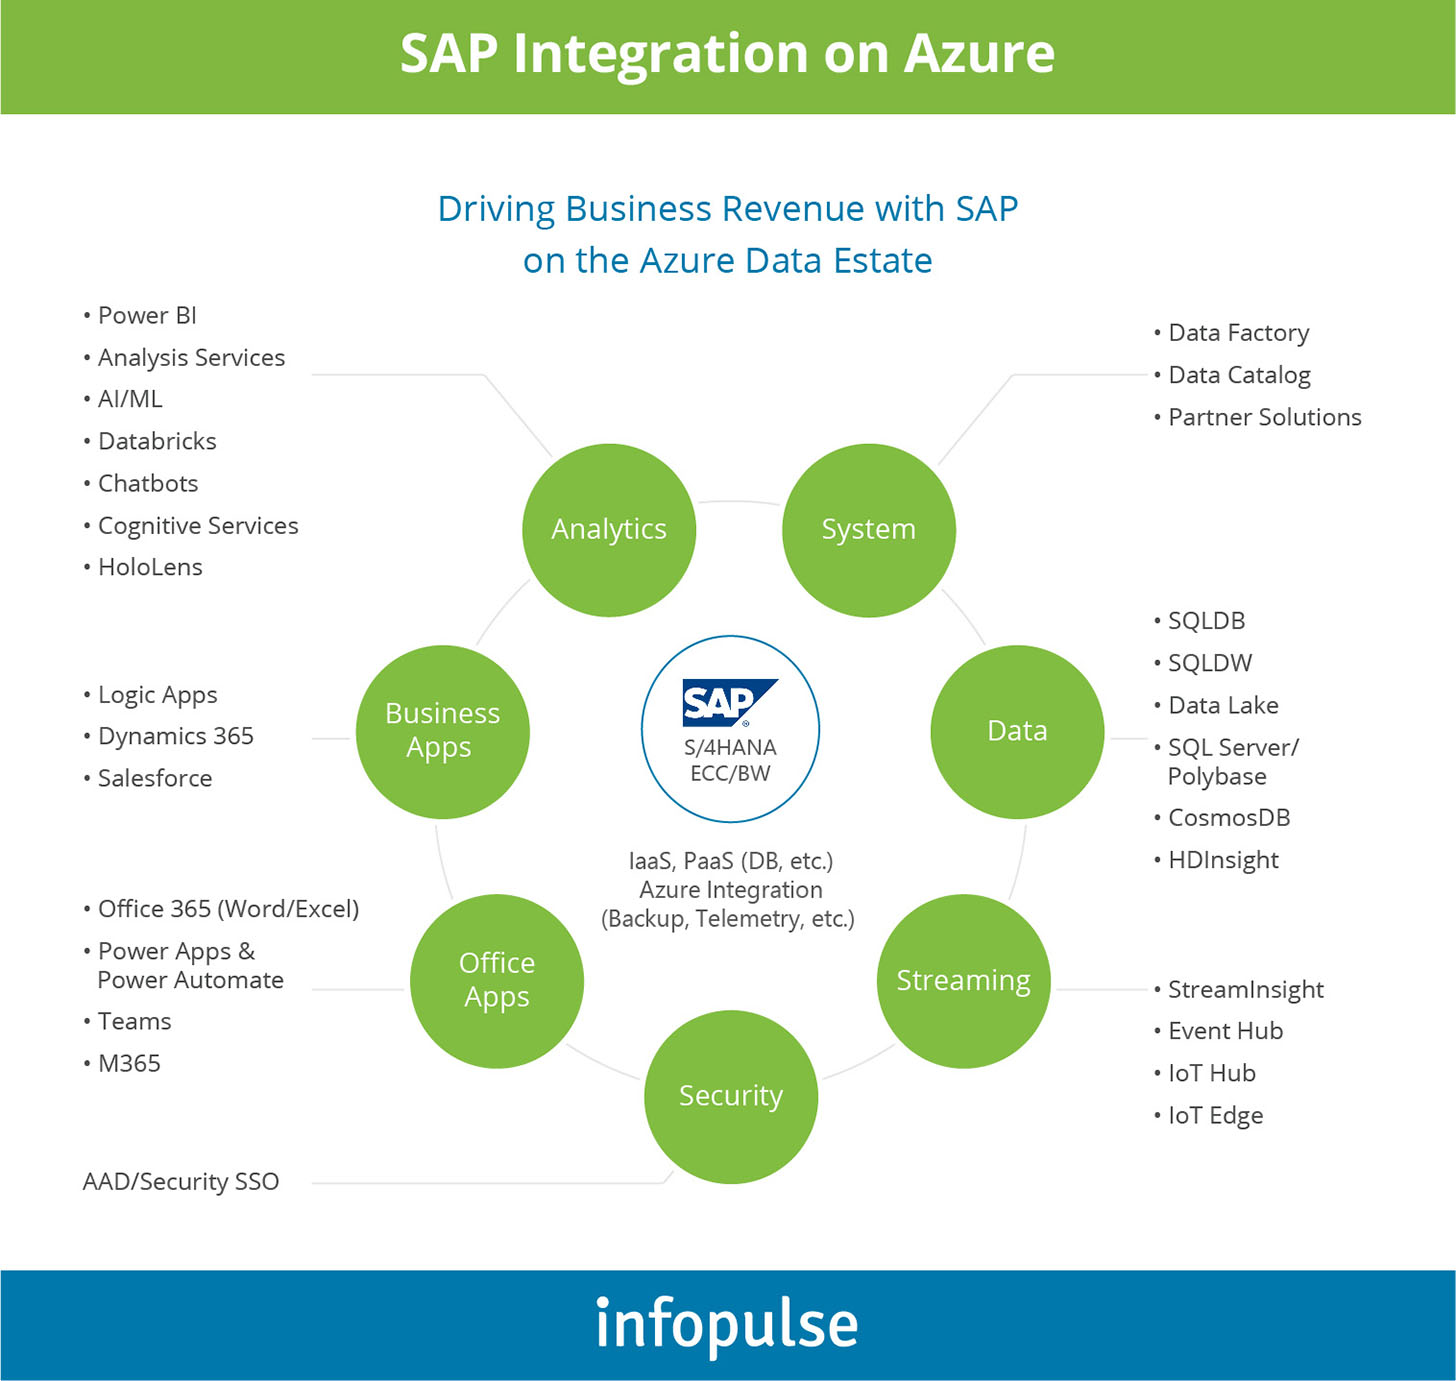 SAP Integration on Azure - Infopulse - 1